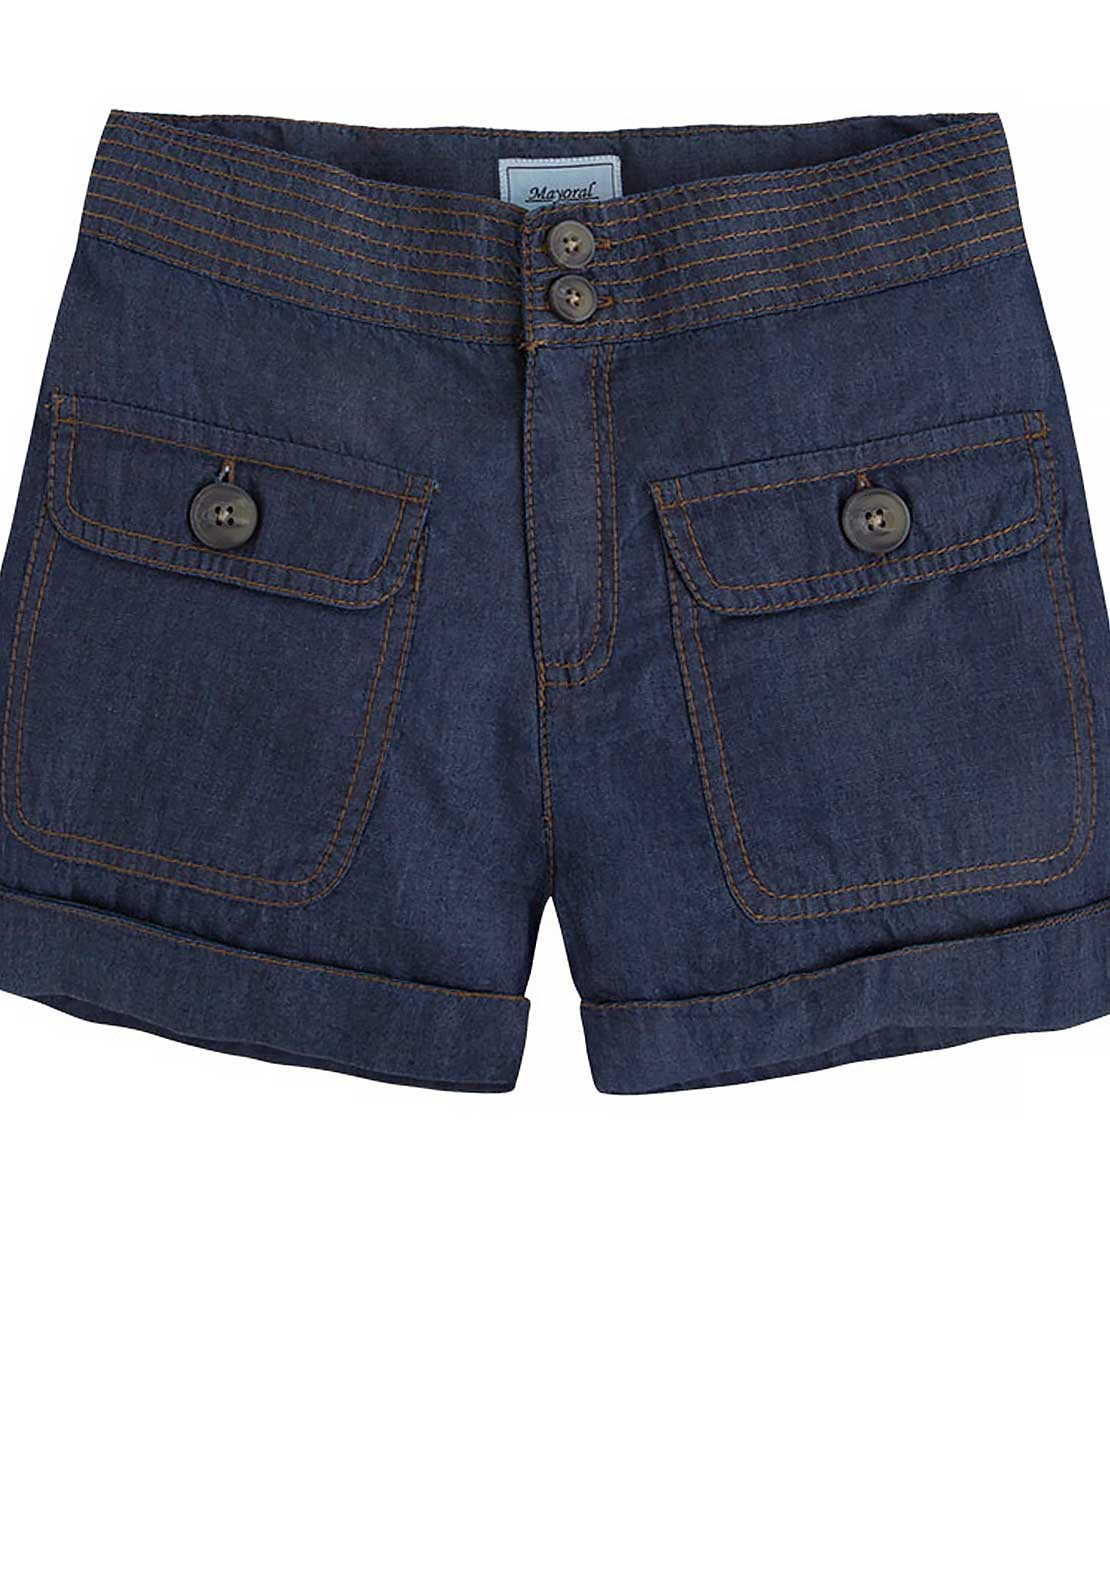 Mayoral Girls Cotton Shorts, Dark Blue Denim